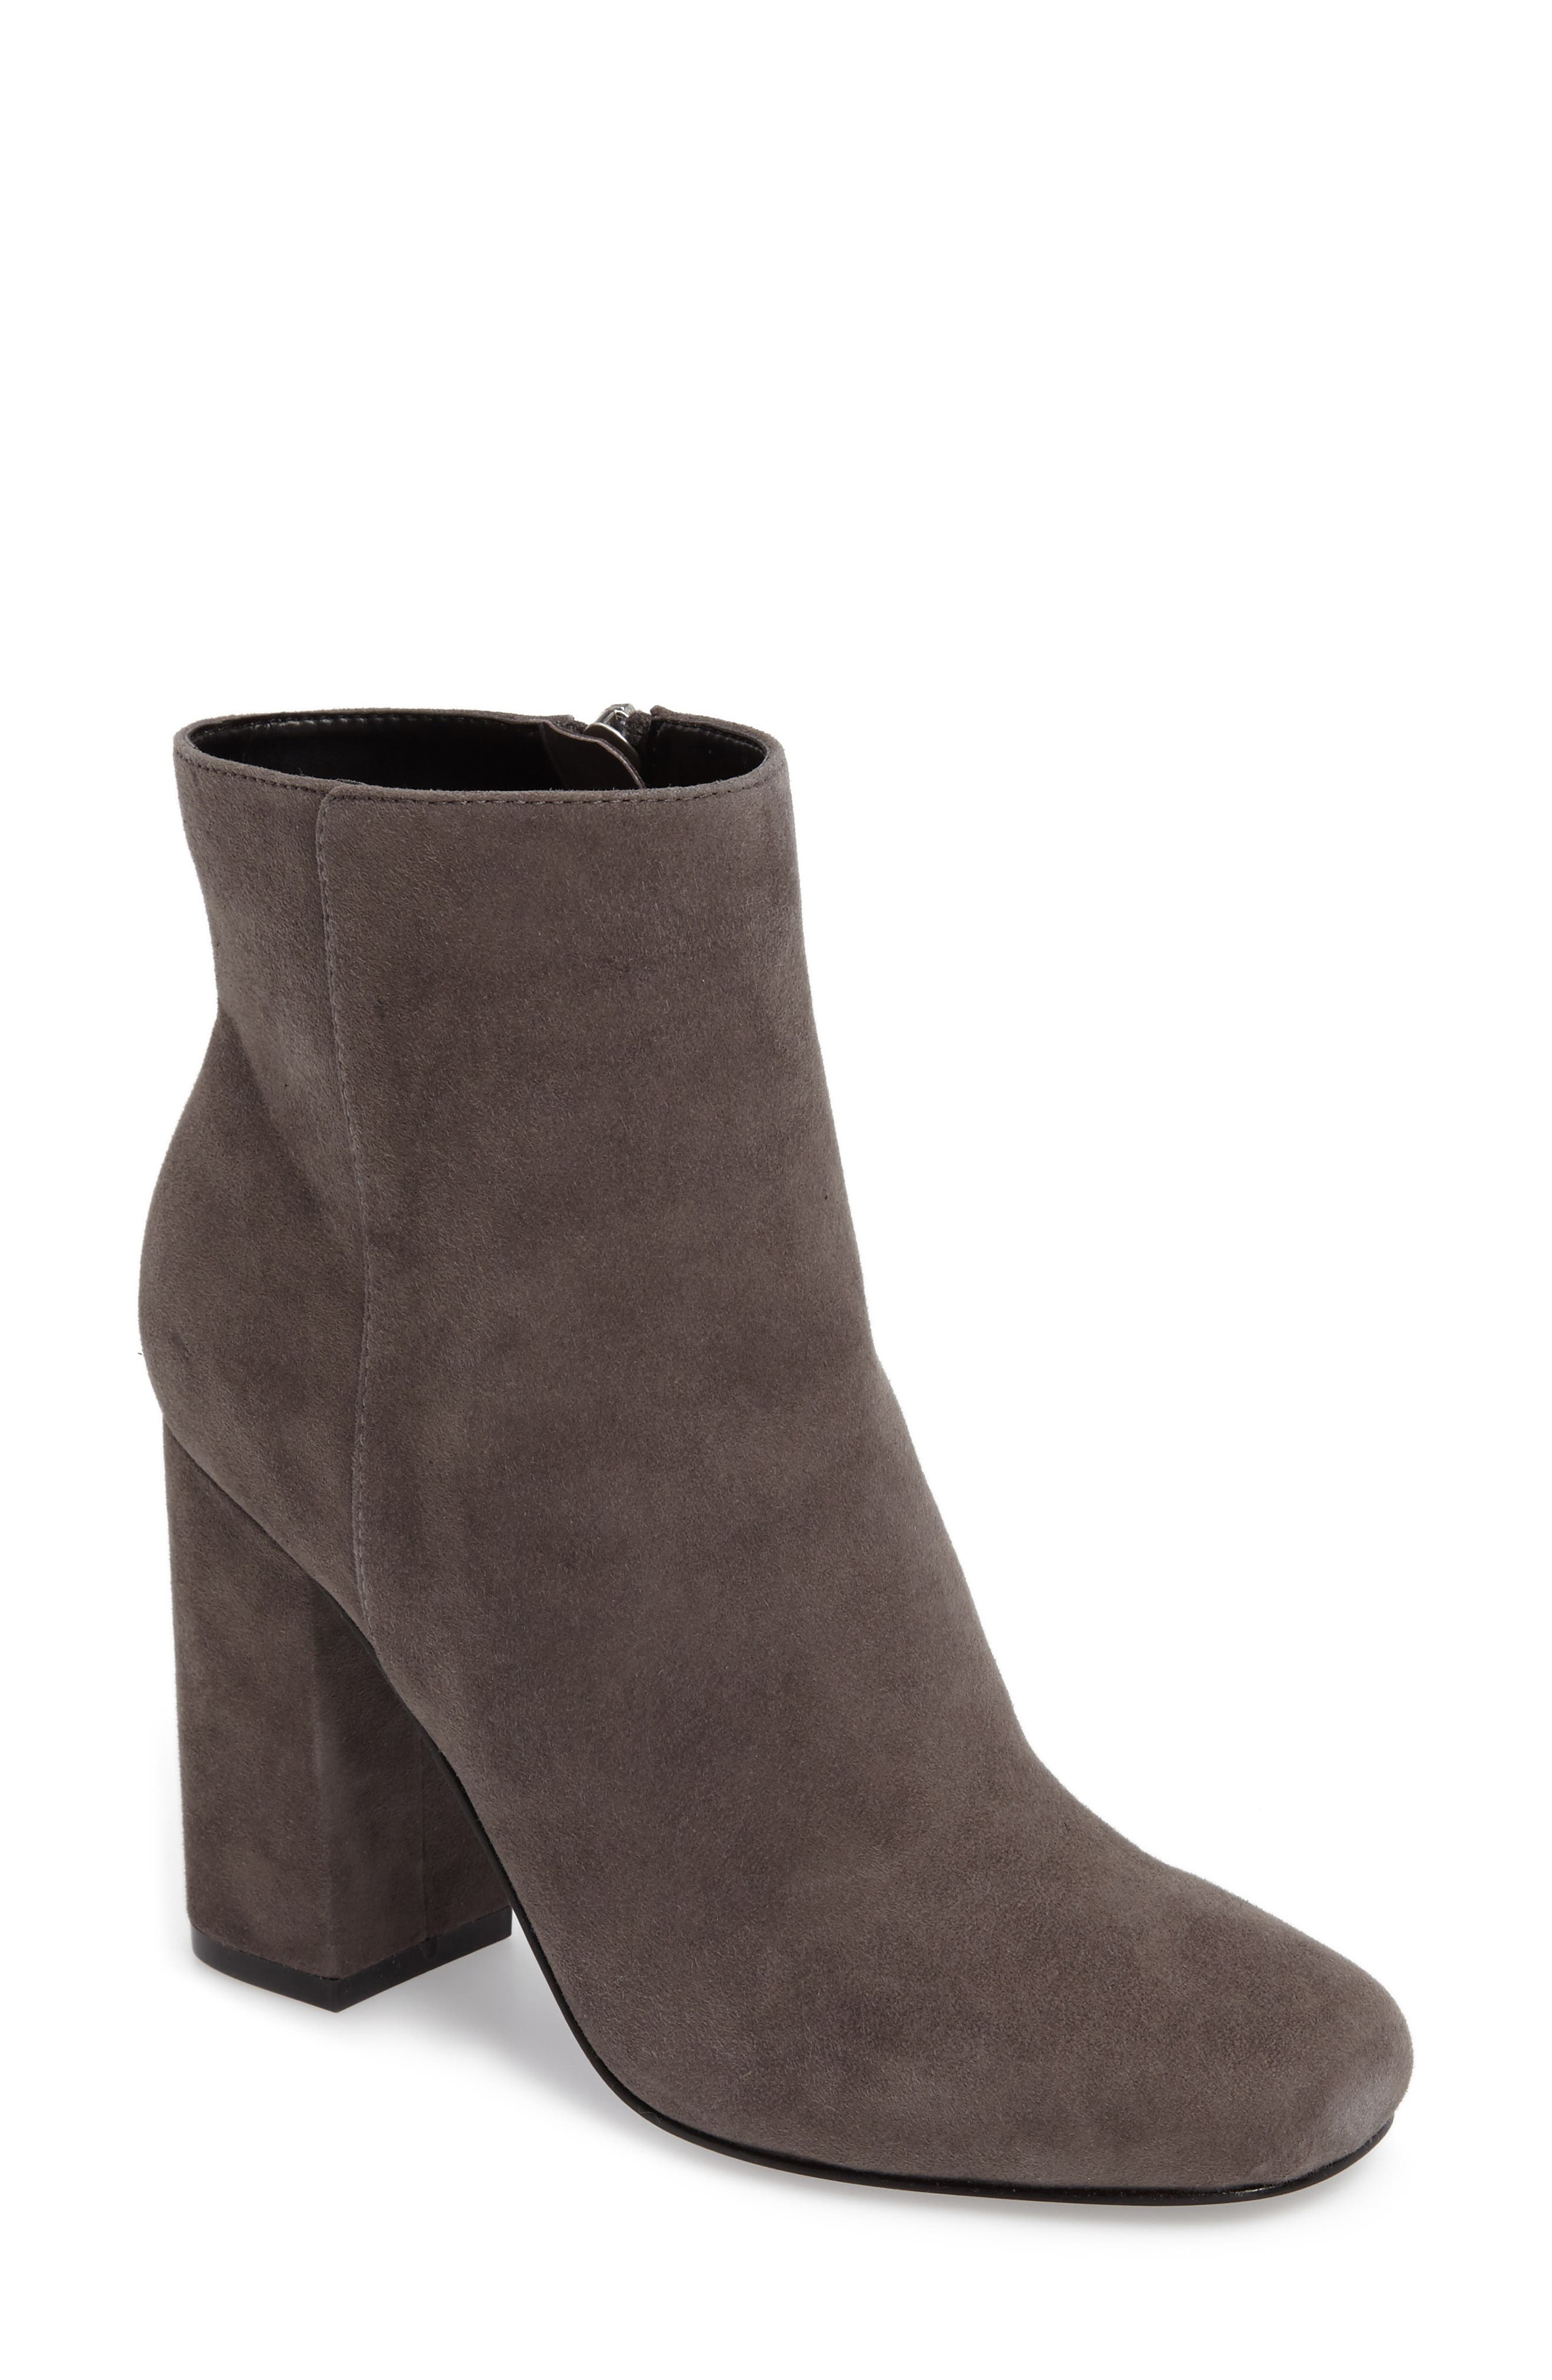 Charles David Studio Block Heel Bootie (Women)